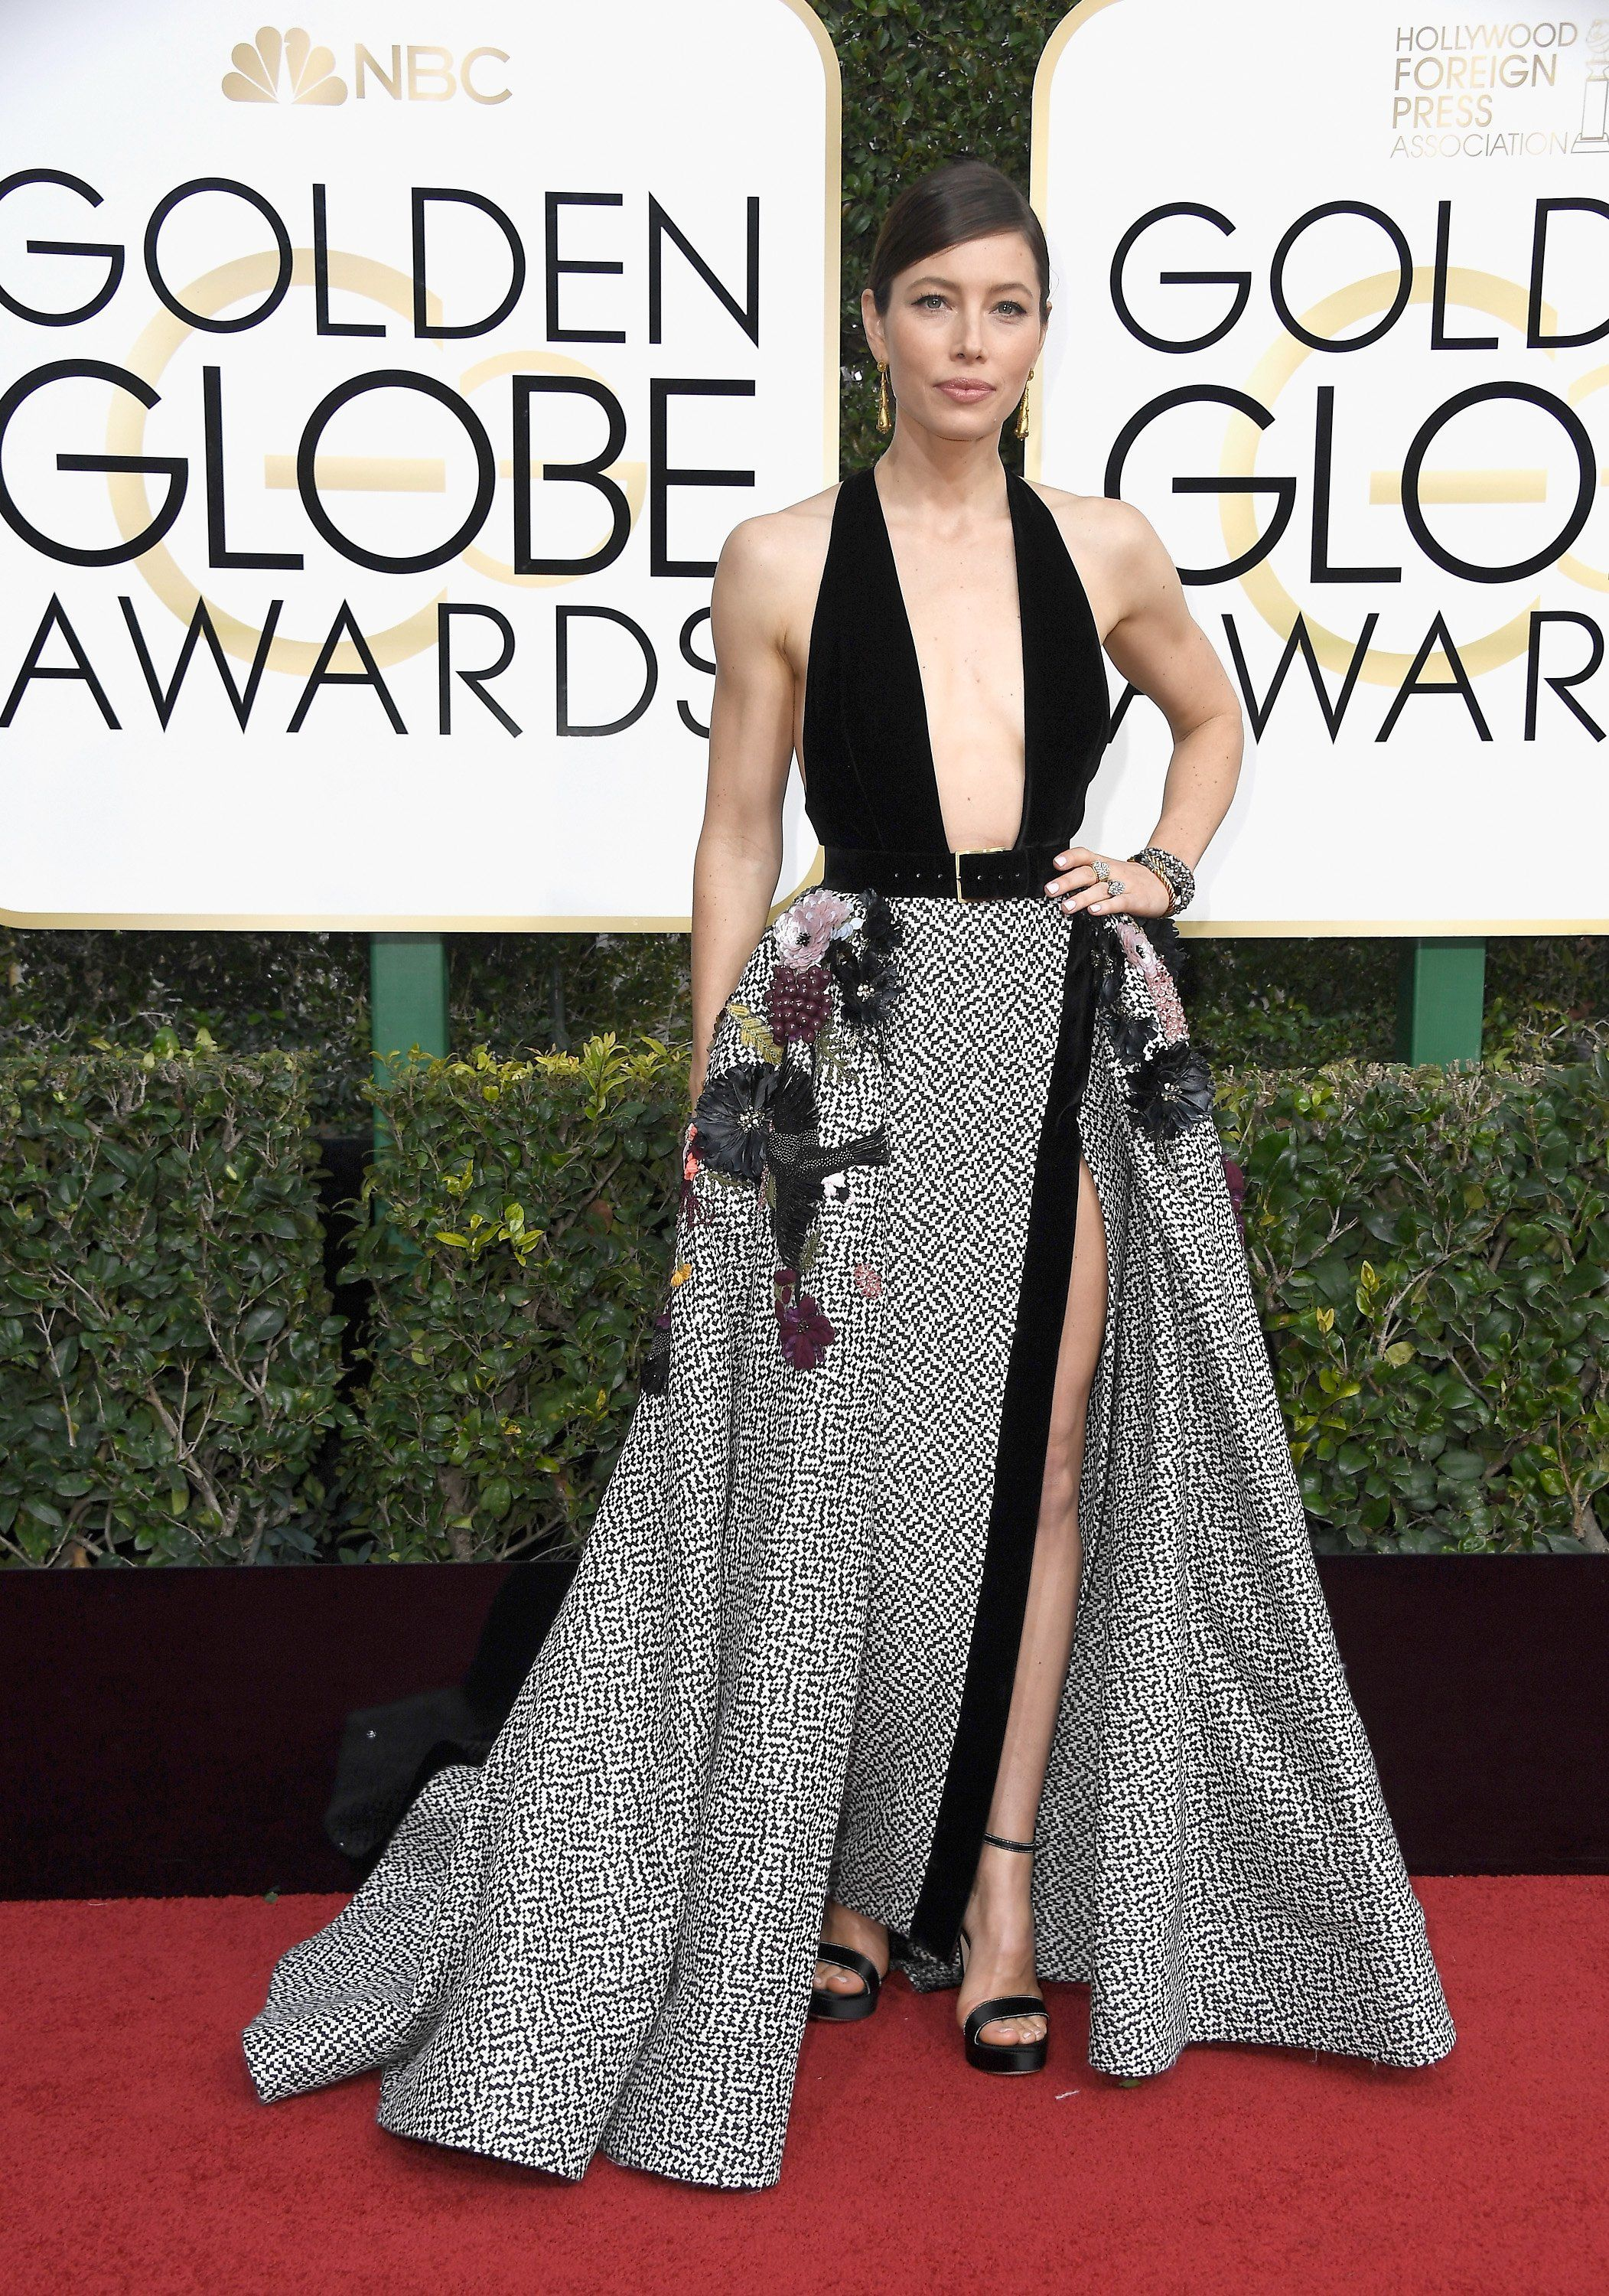 Golden Globes 2017 Fashion Live From The Red Carpet Red Carpet Dresses 2017 Nice Dresses Golden Globes Red Carpet